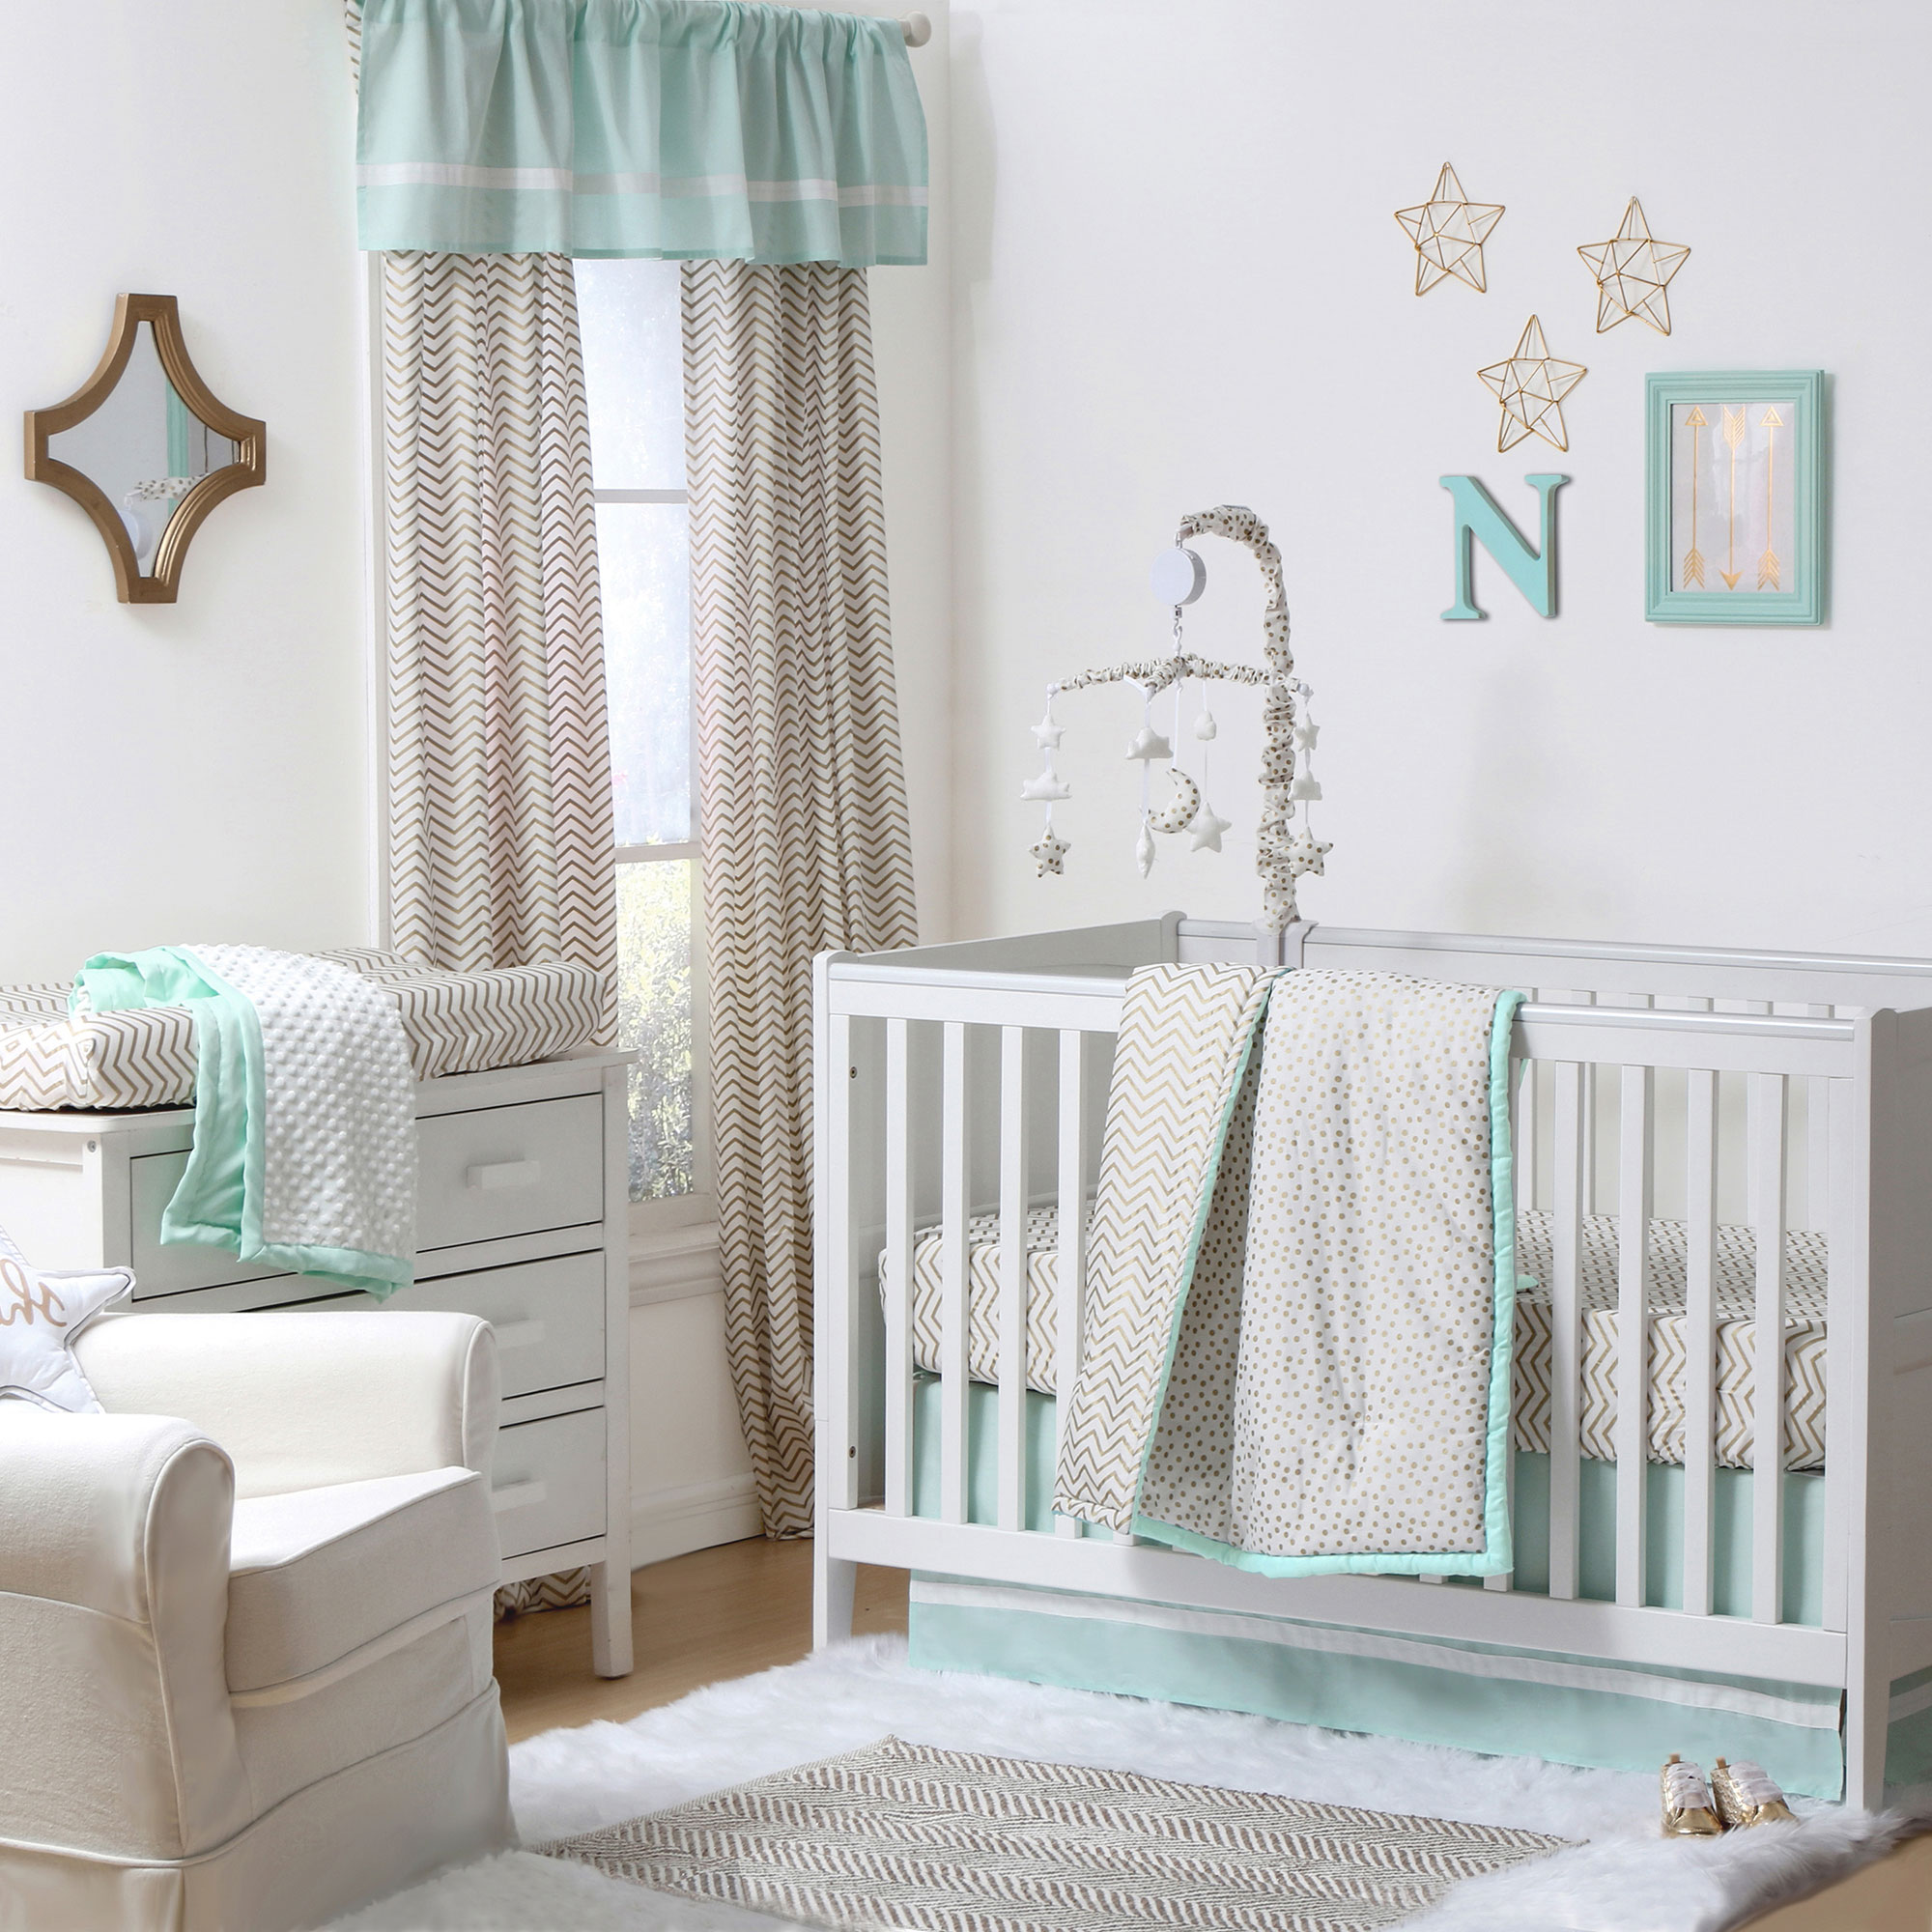 Minted Confetti in Gold and Green Crib Bedding - 11 Piece Sleep Essentials Set